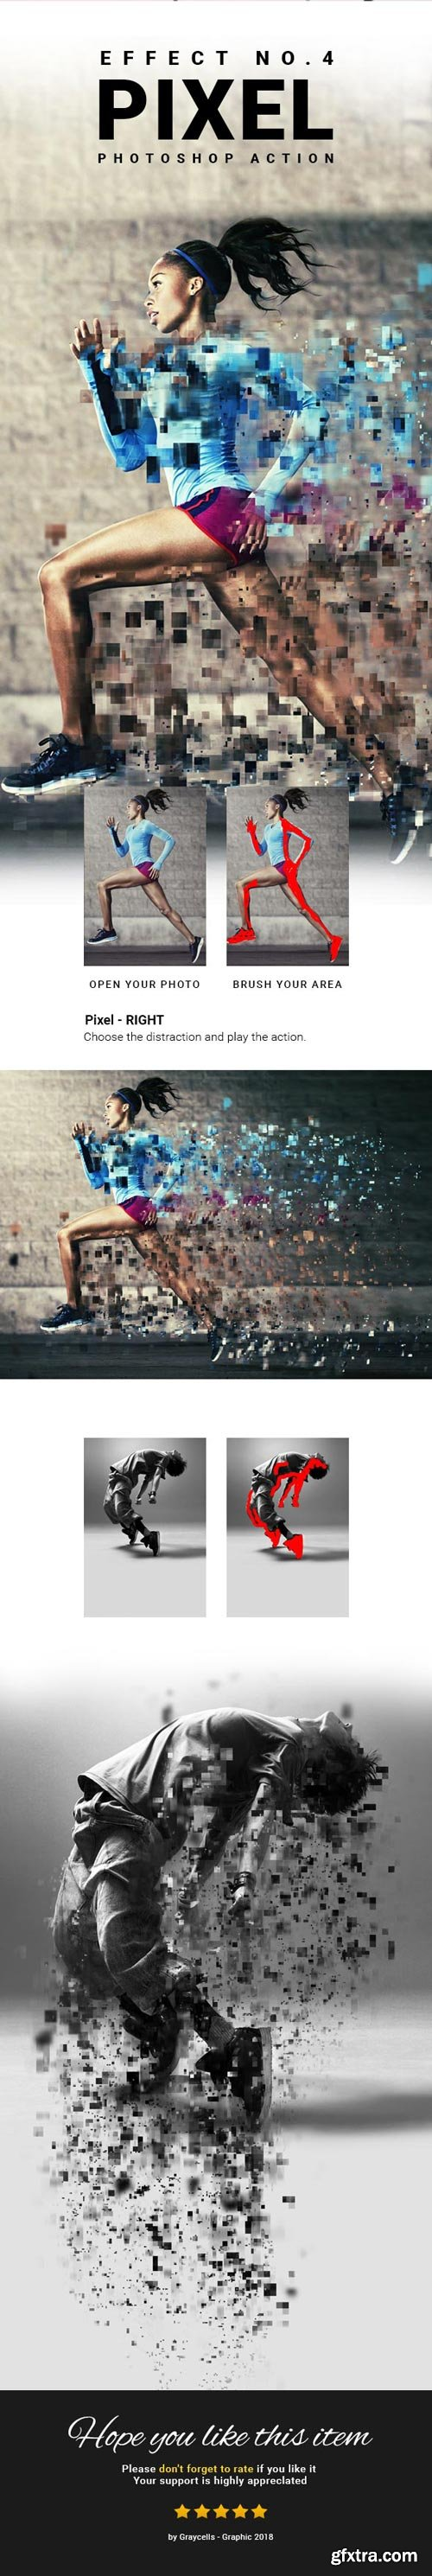 GraphicRiver - 4 in 1 Dispersion Photoshop Action - 21990130